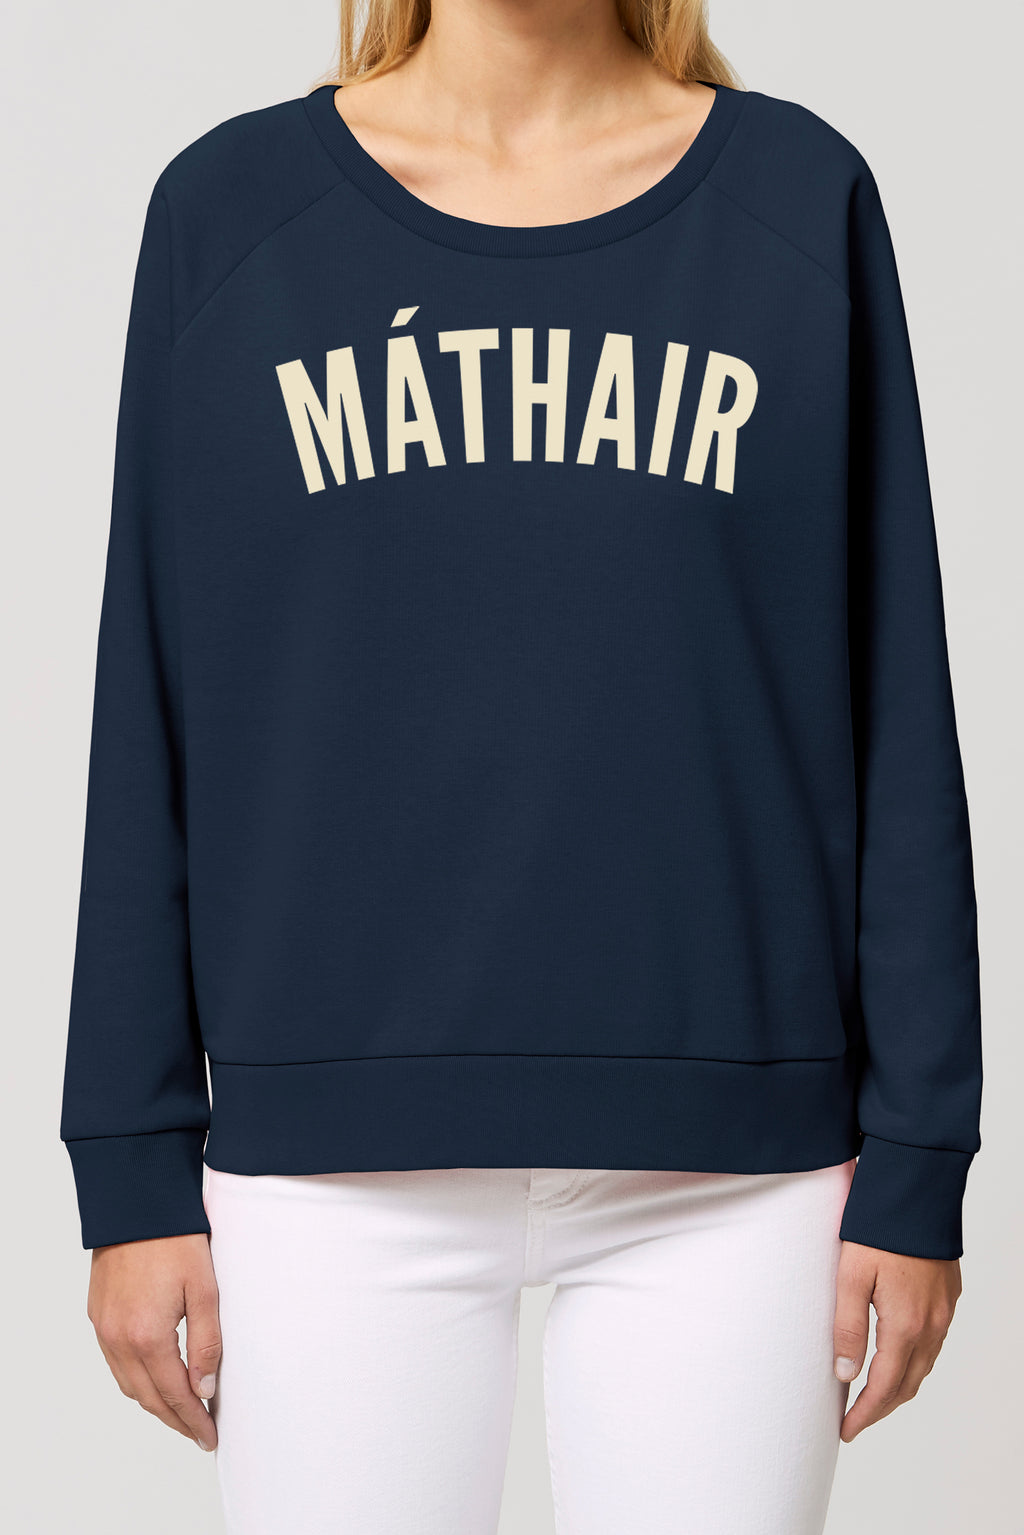 MÁTHAIR French Navy sweatshirt Cannoli Cream